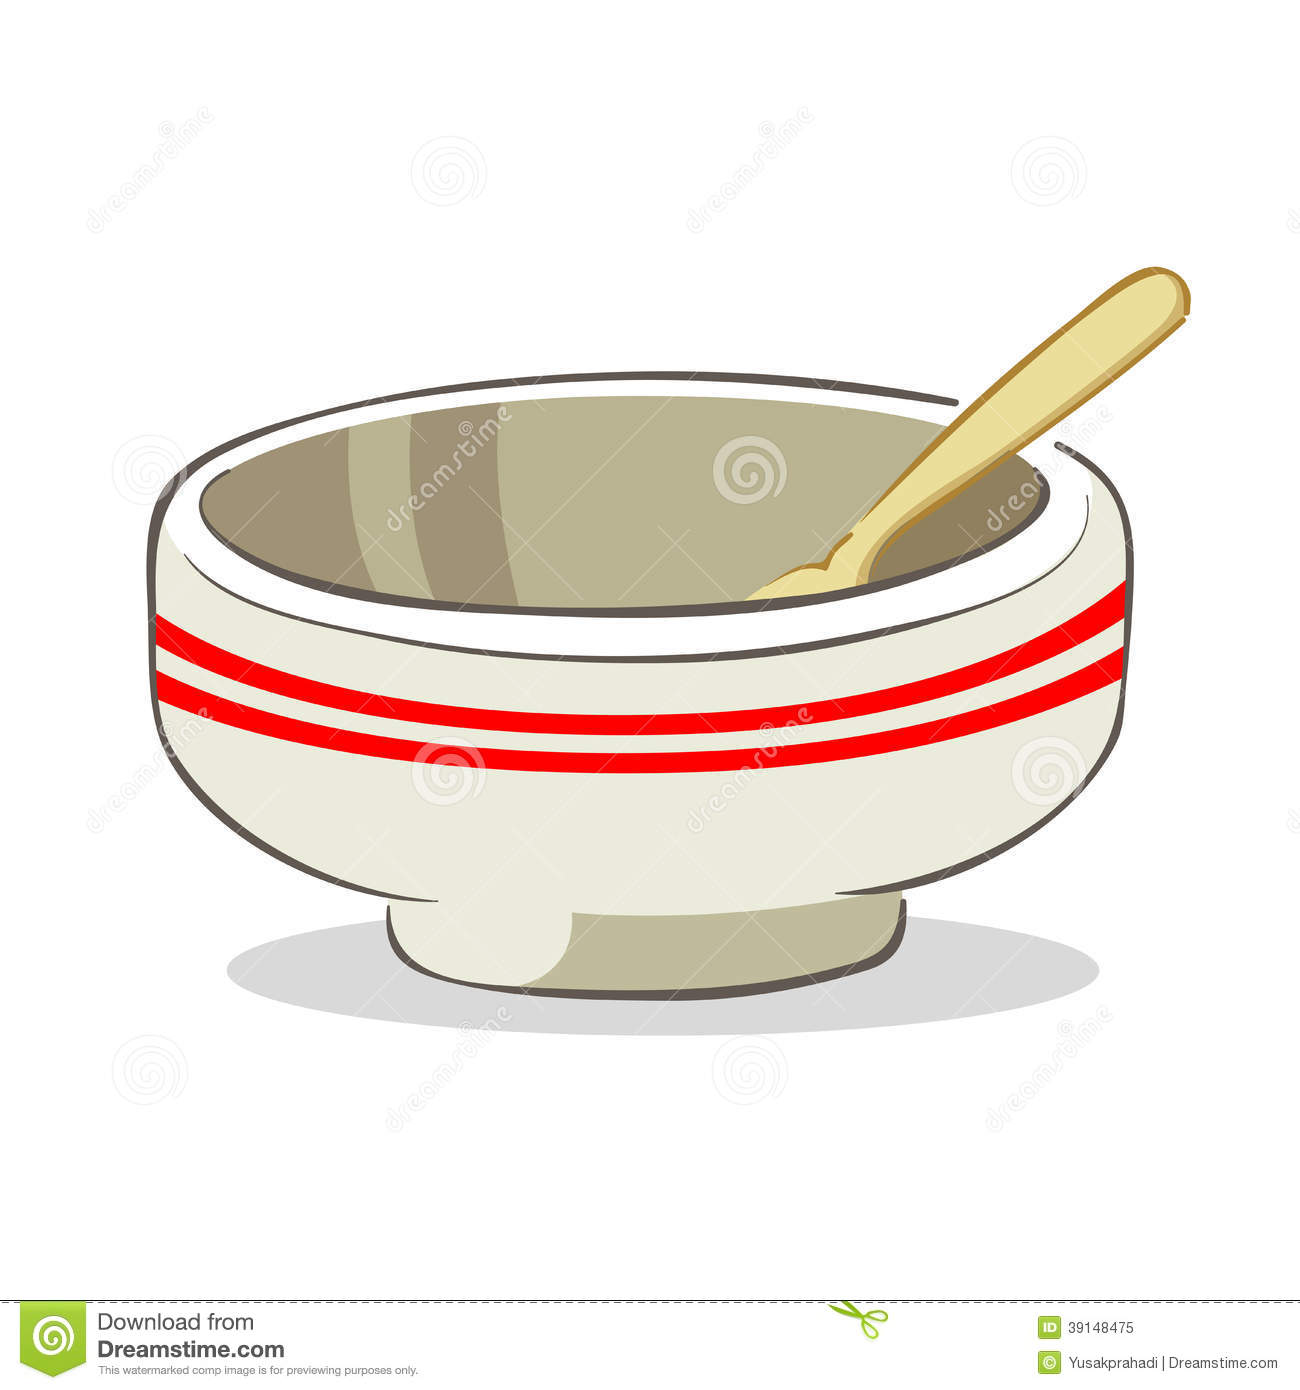 Pics For > Empty Bowl With Spoon